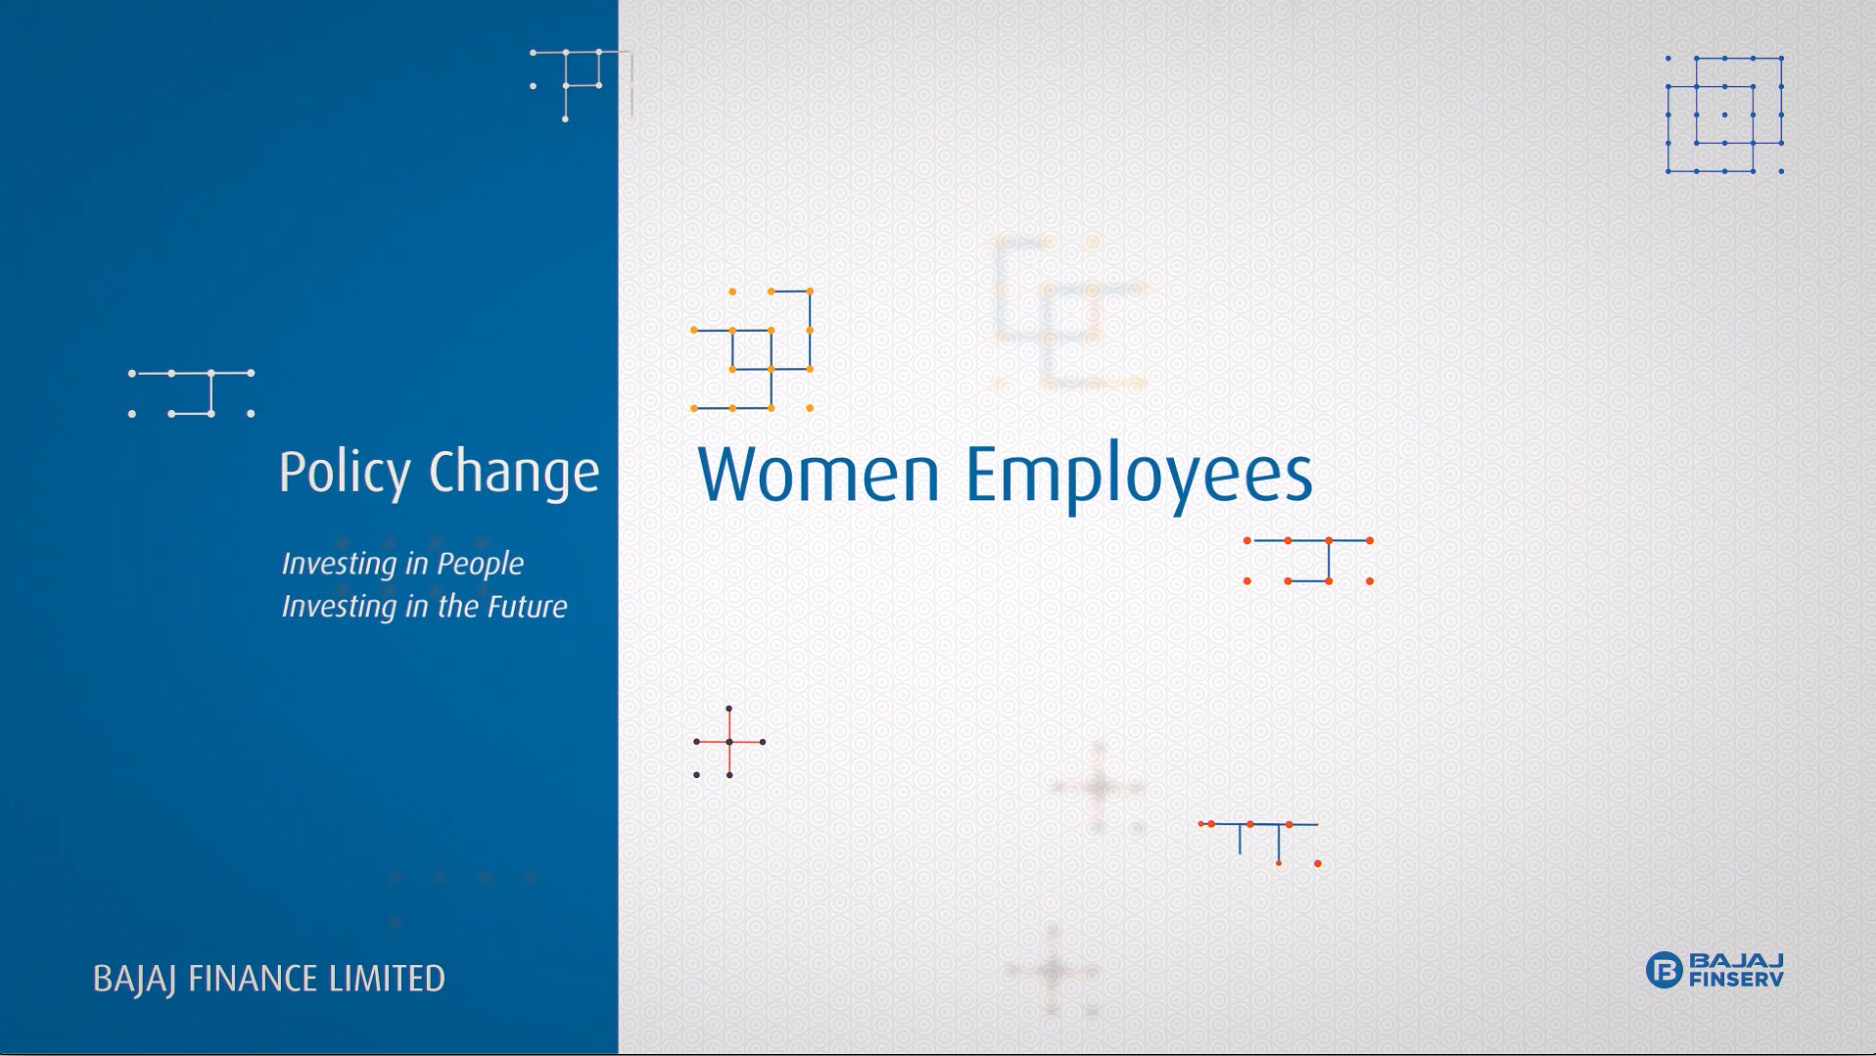 http://www.bluescooterdesigns.in/project/policy-change-women-employees/